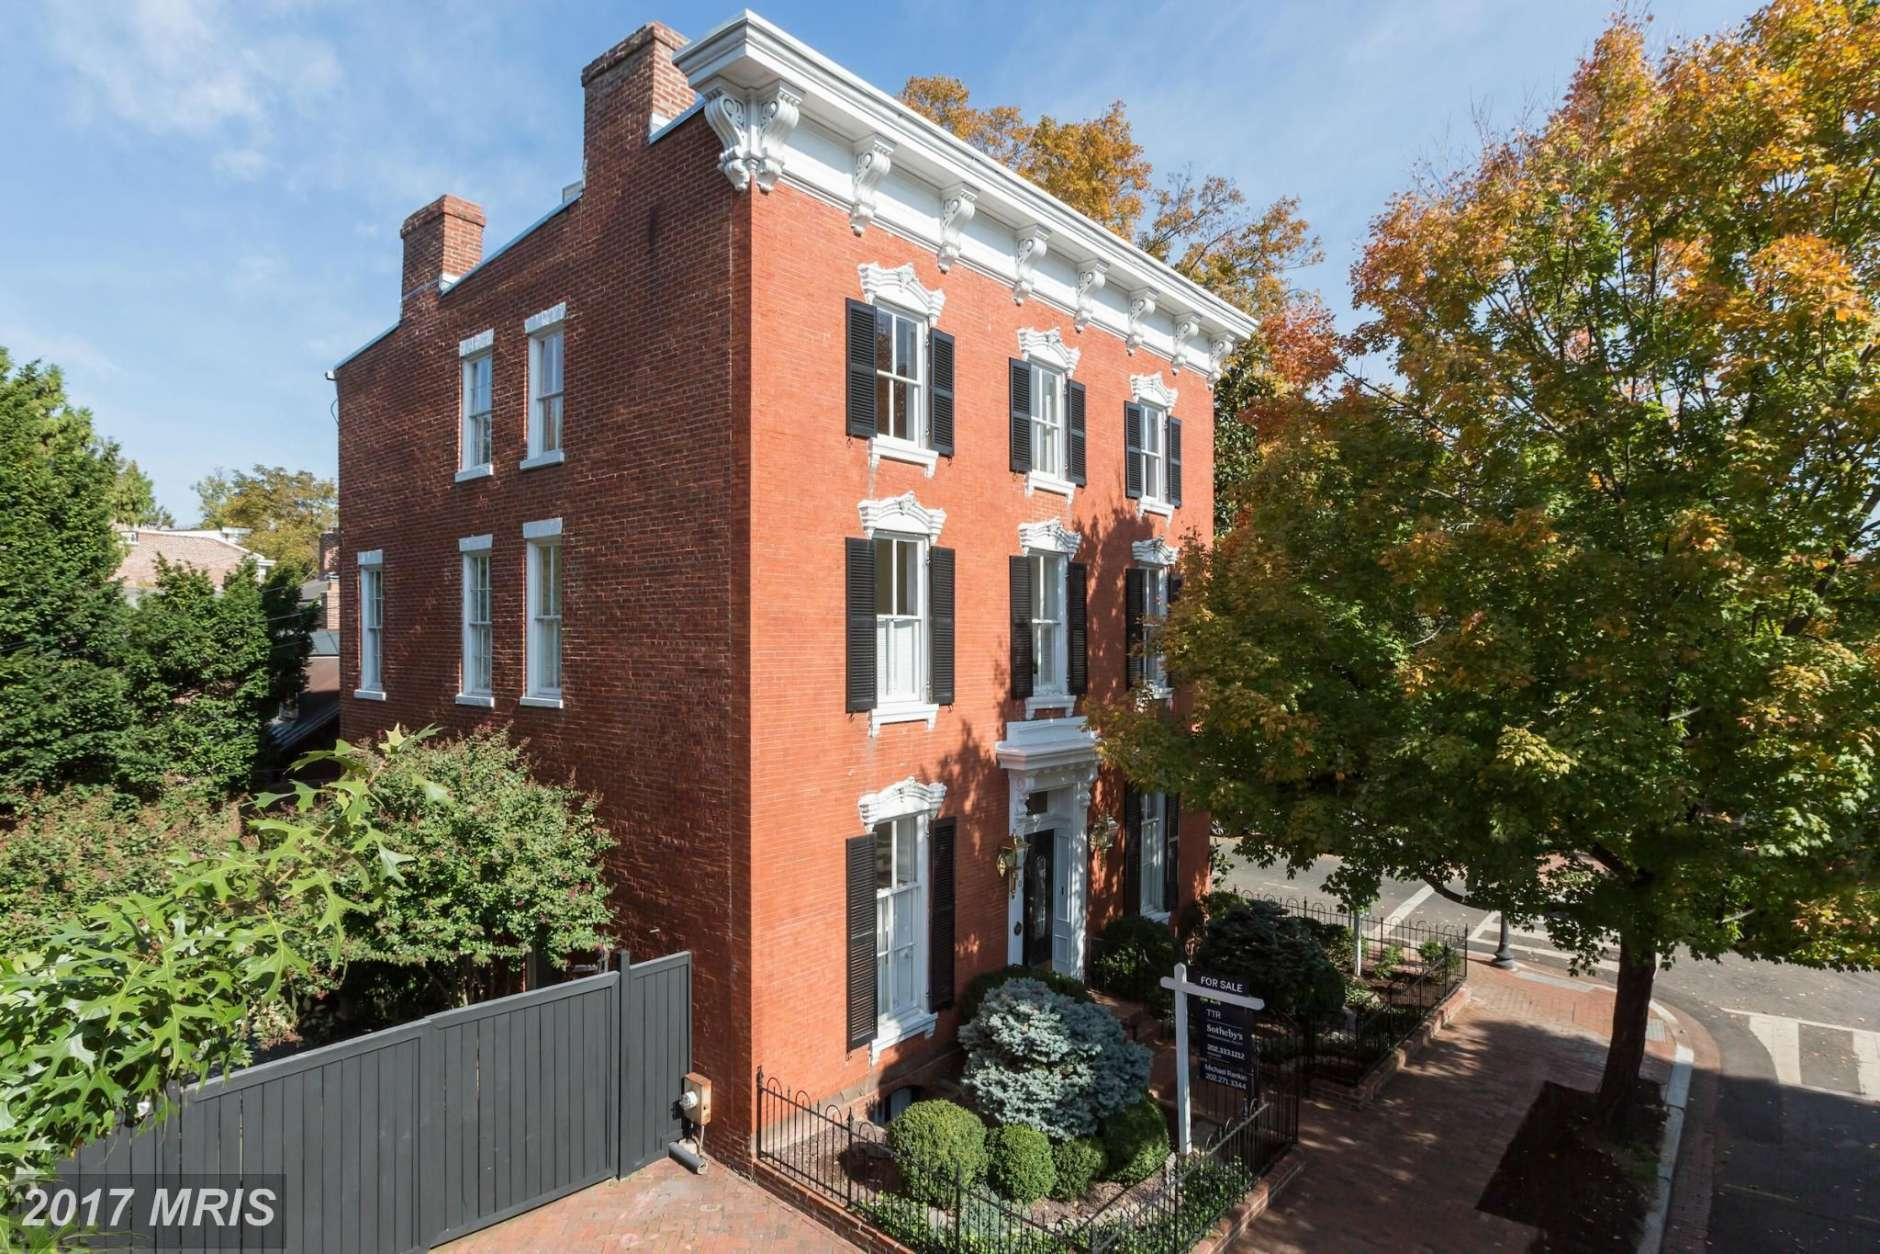 8. $3,950,000  3401 N St. NW; Washington, D.C.  This house built in 1900 has four full baths, one half bath and seven bedrooms.   (Courtesy MRIS, a Bright MLS)